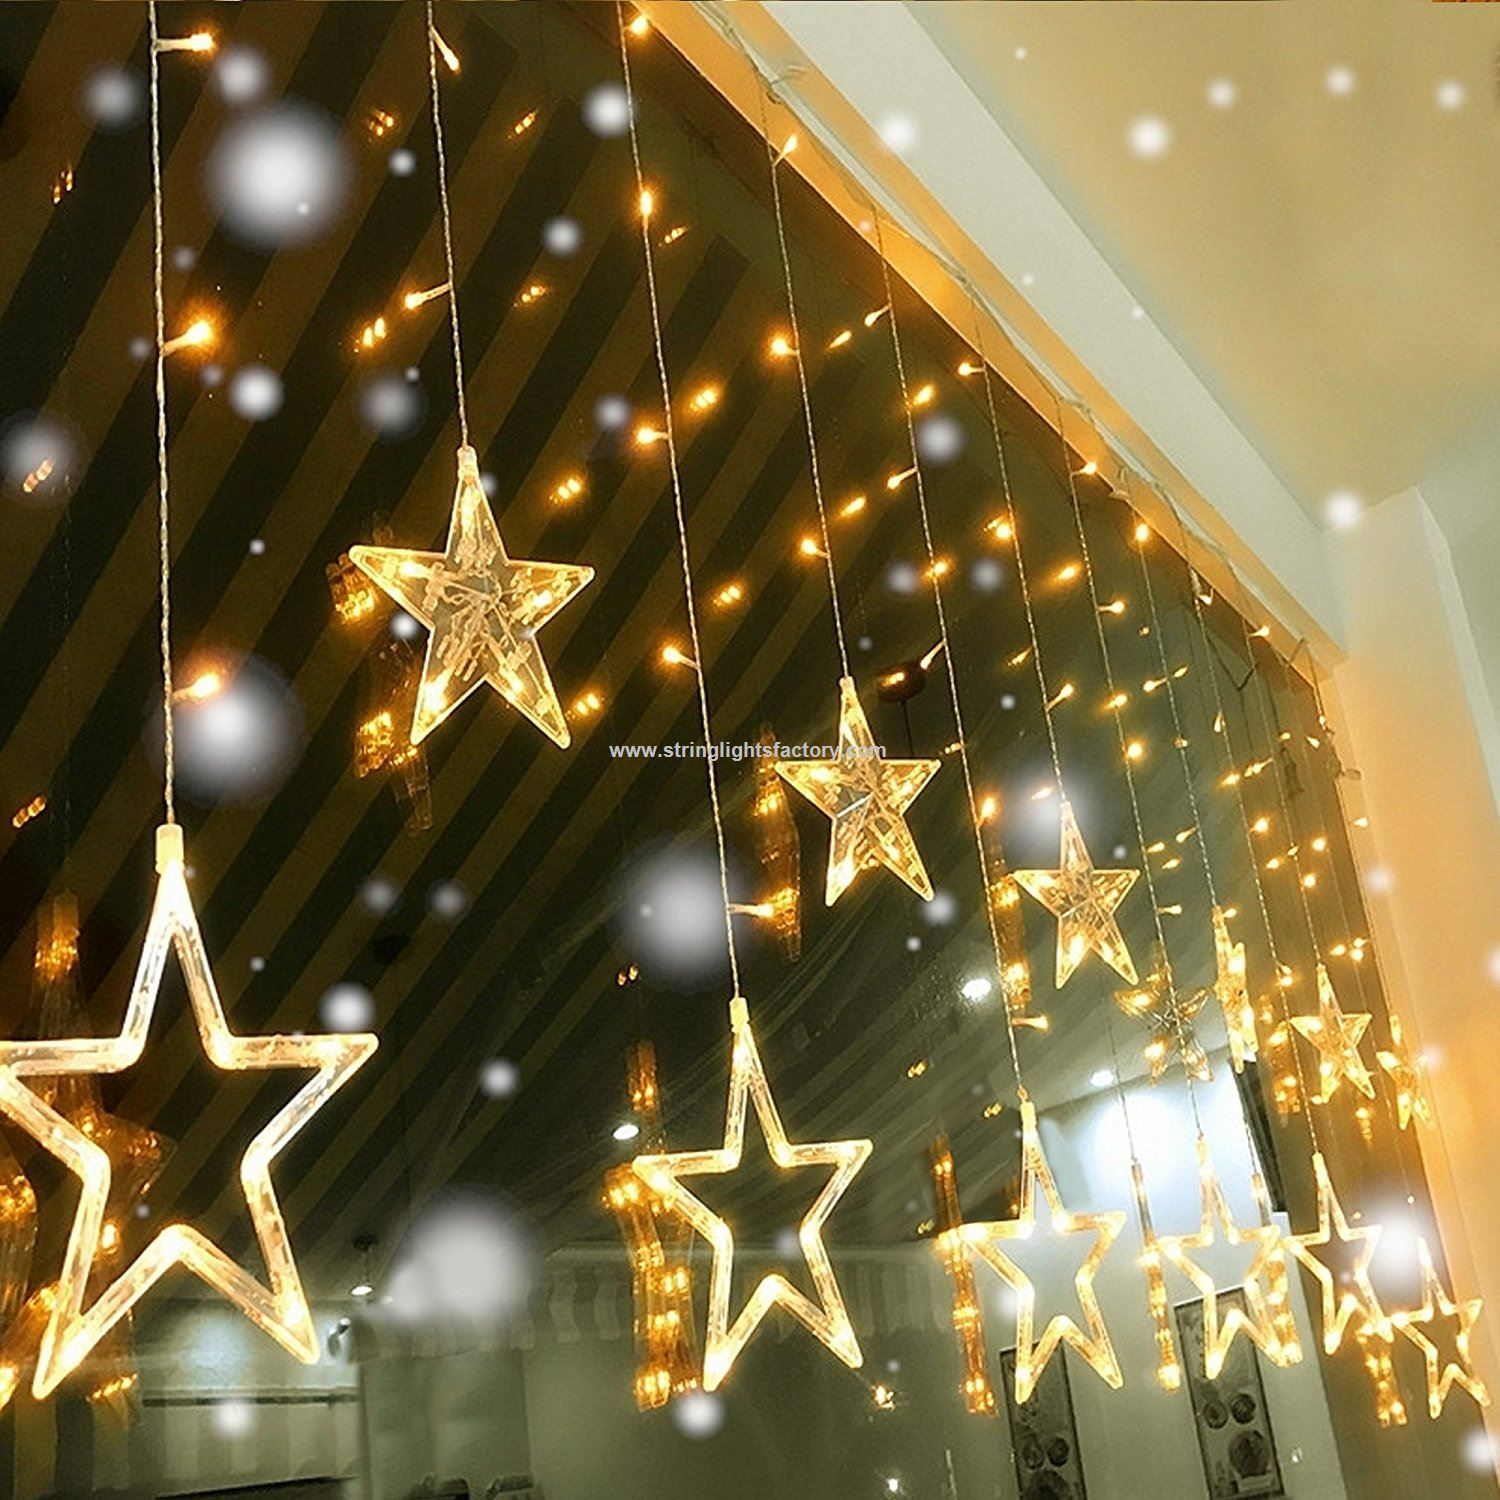 d batteries star curtain lights 12 stars 6small stars and 6big stars 138 leds curtain string lights